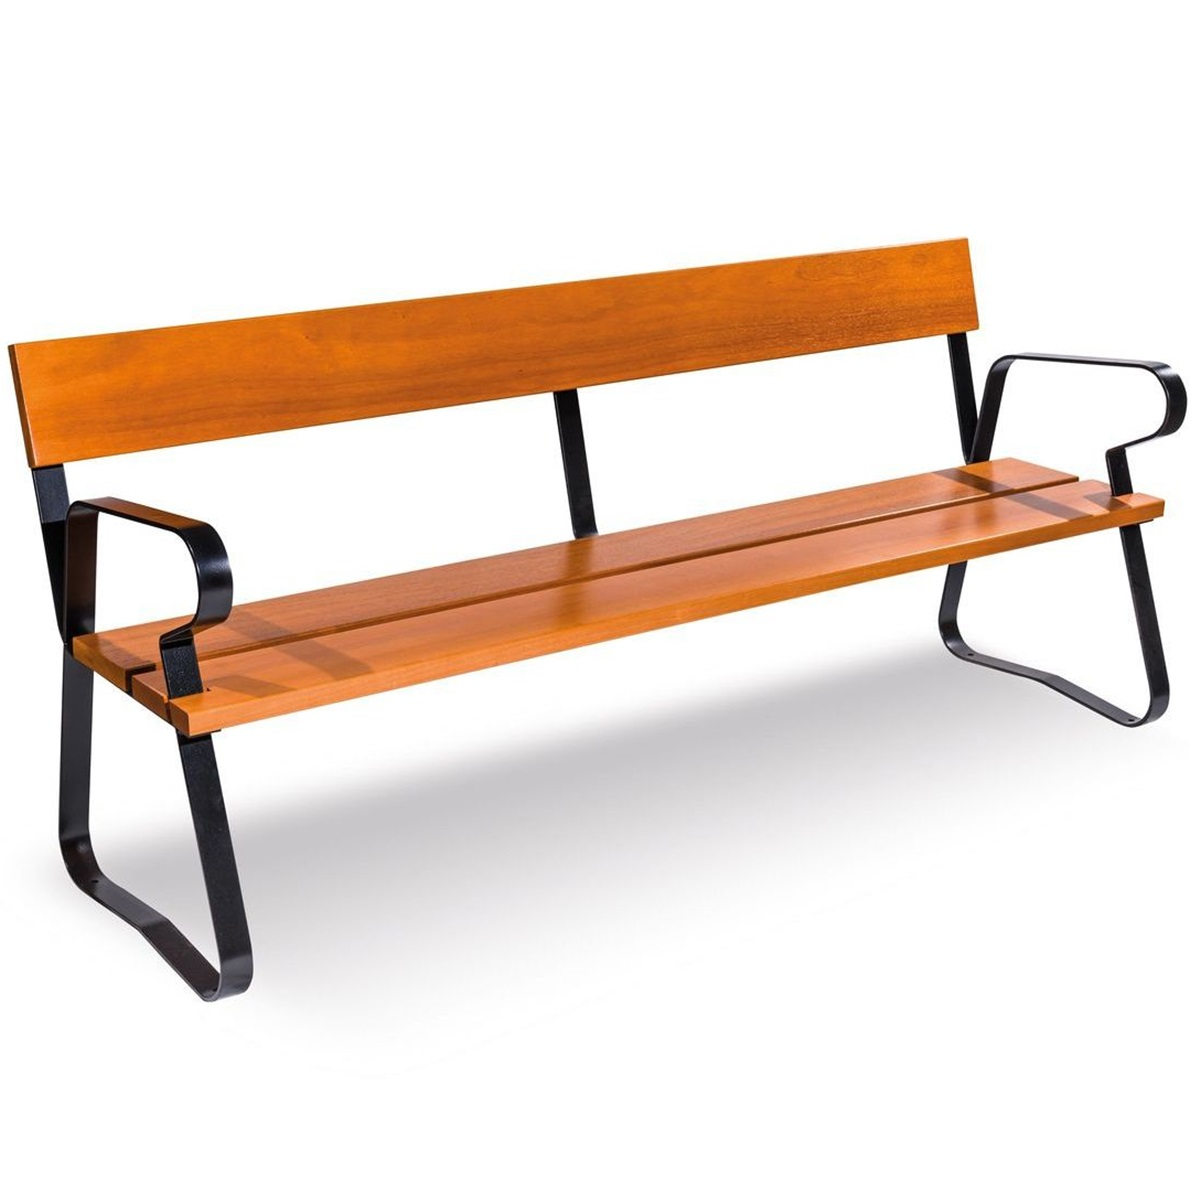 Madrid Bench C-7